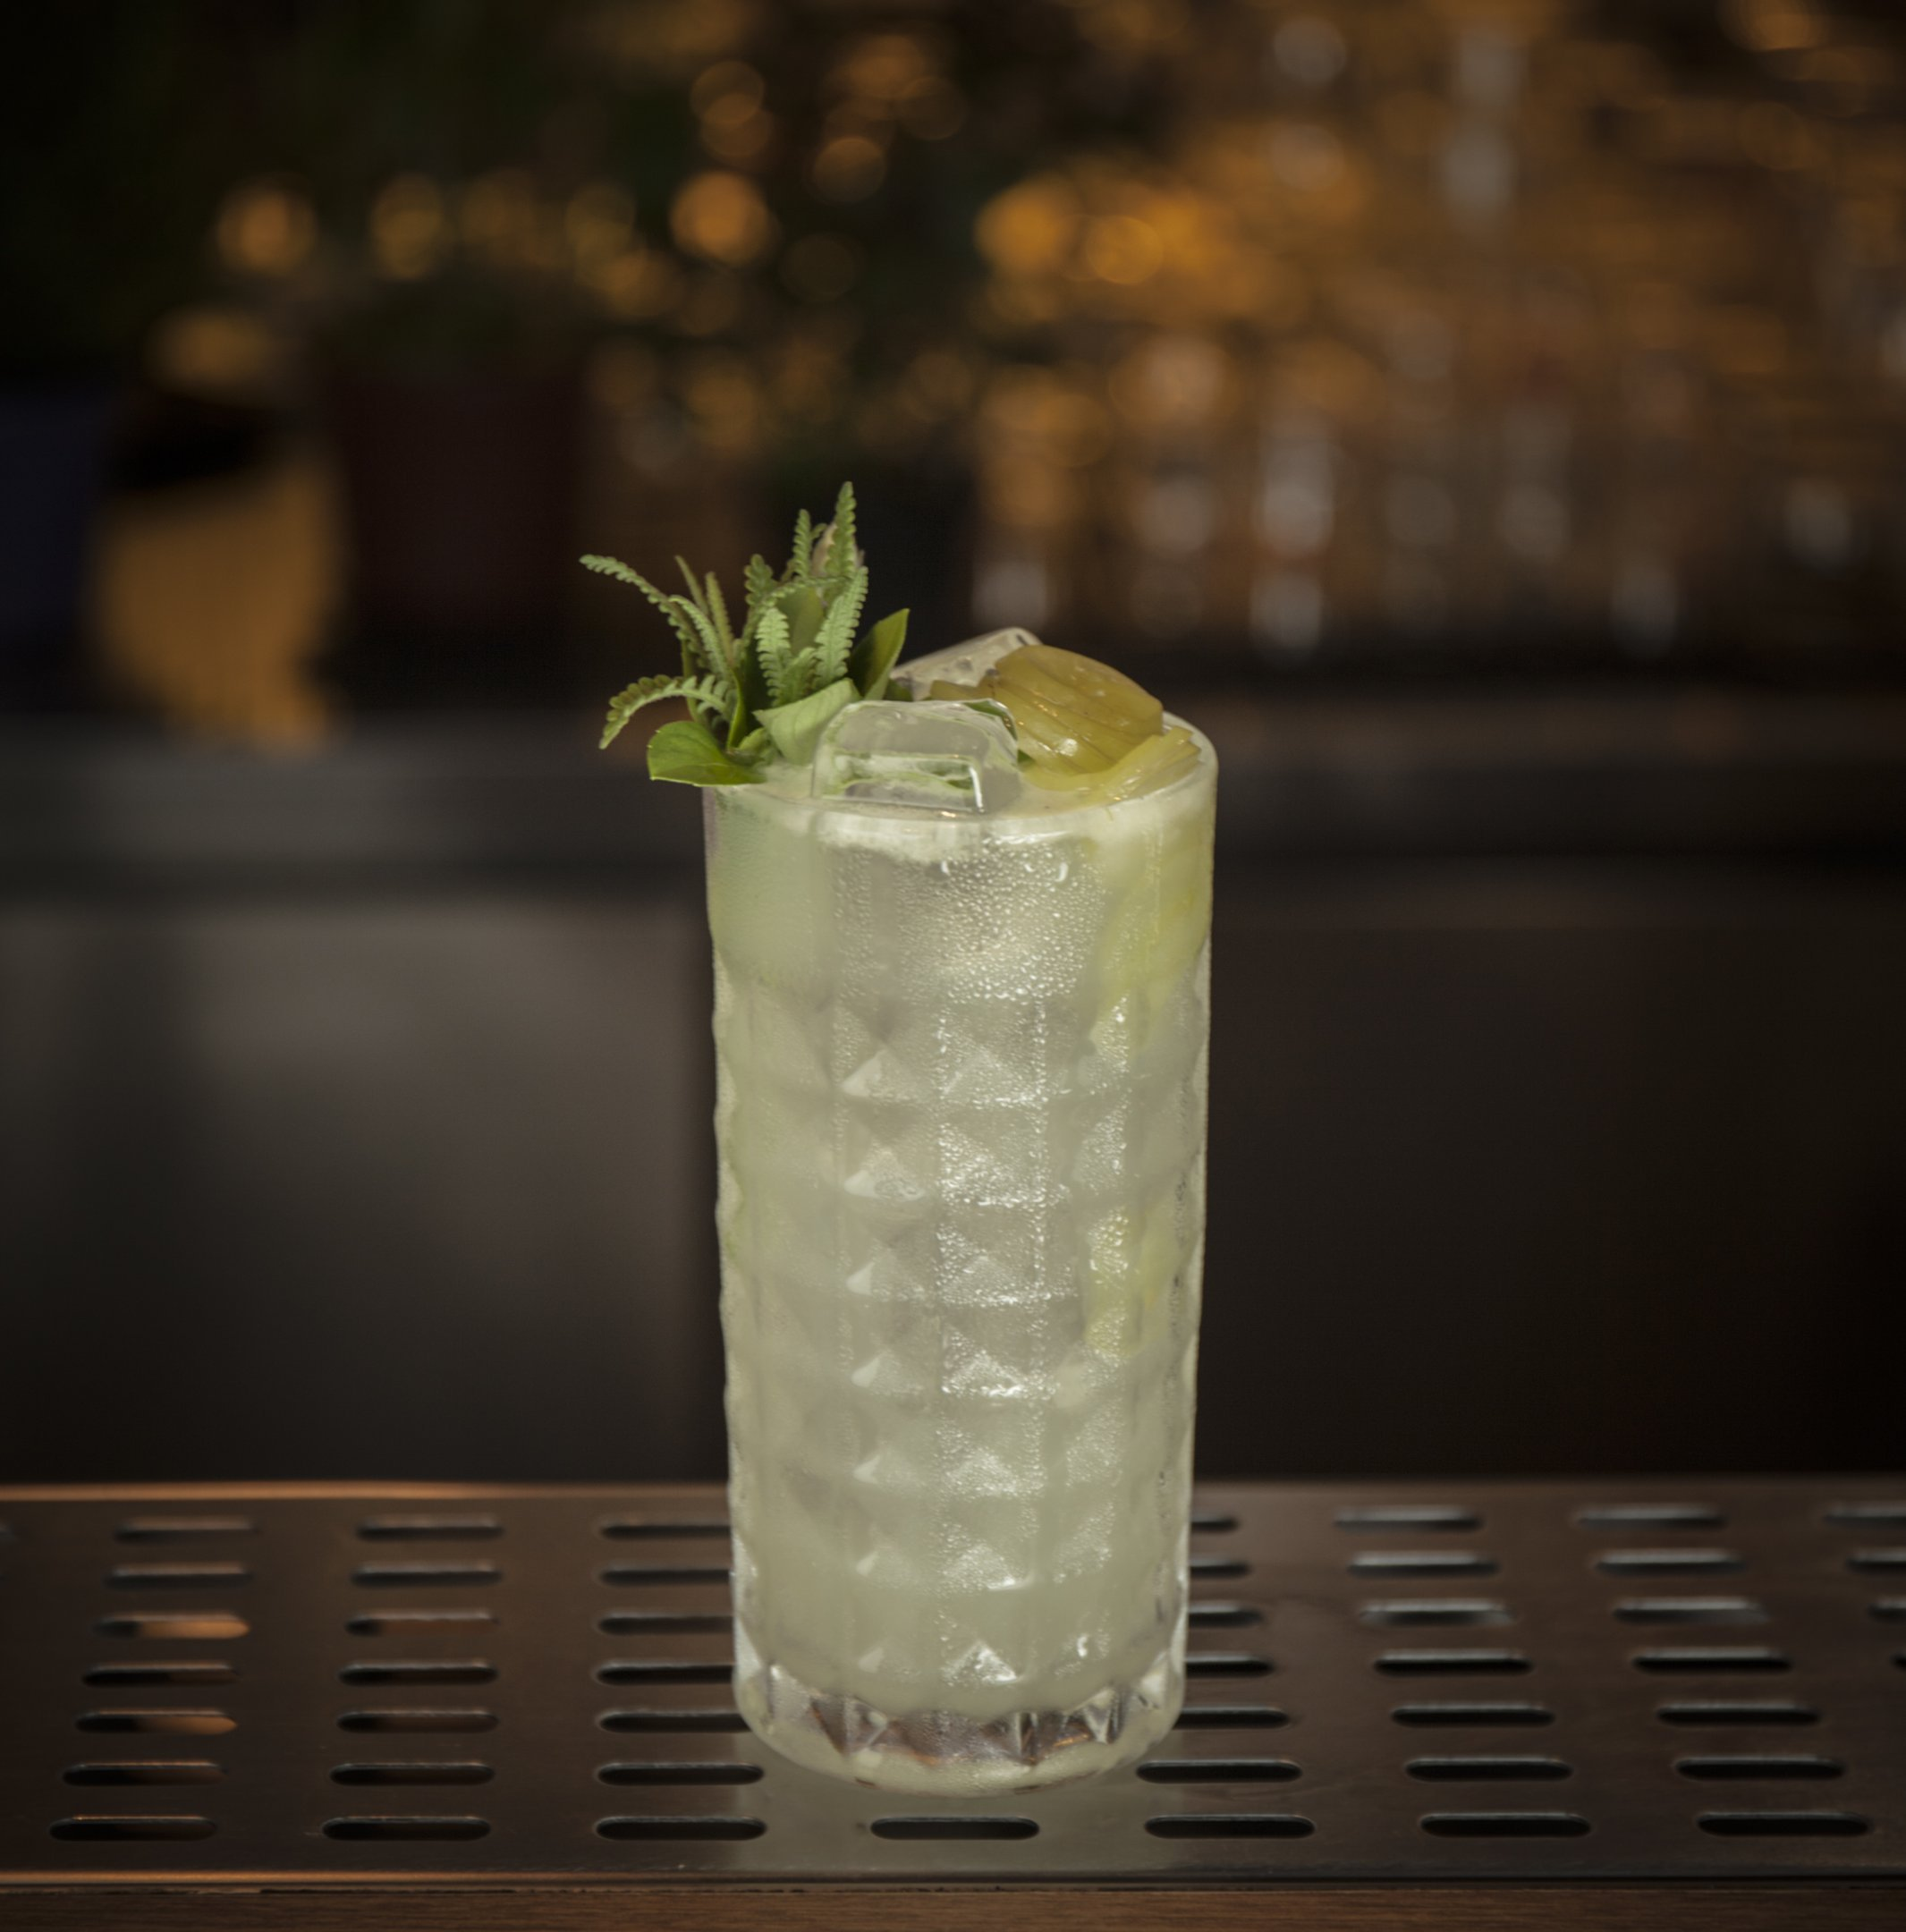 Petrichor Robert Adair Five drinks with gin to celebrate the arrival of spring